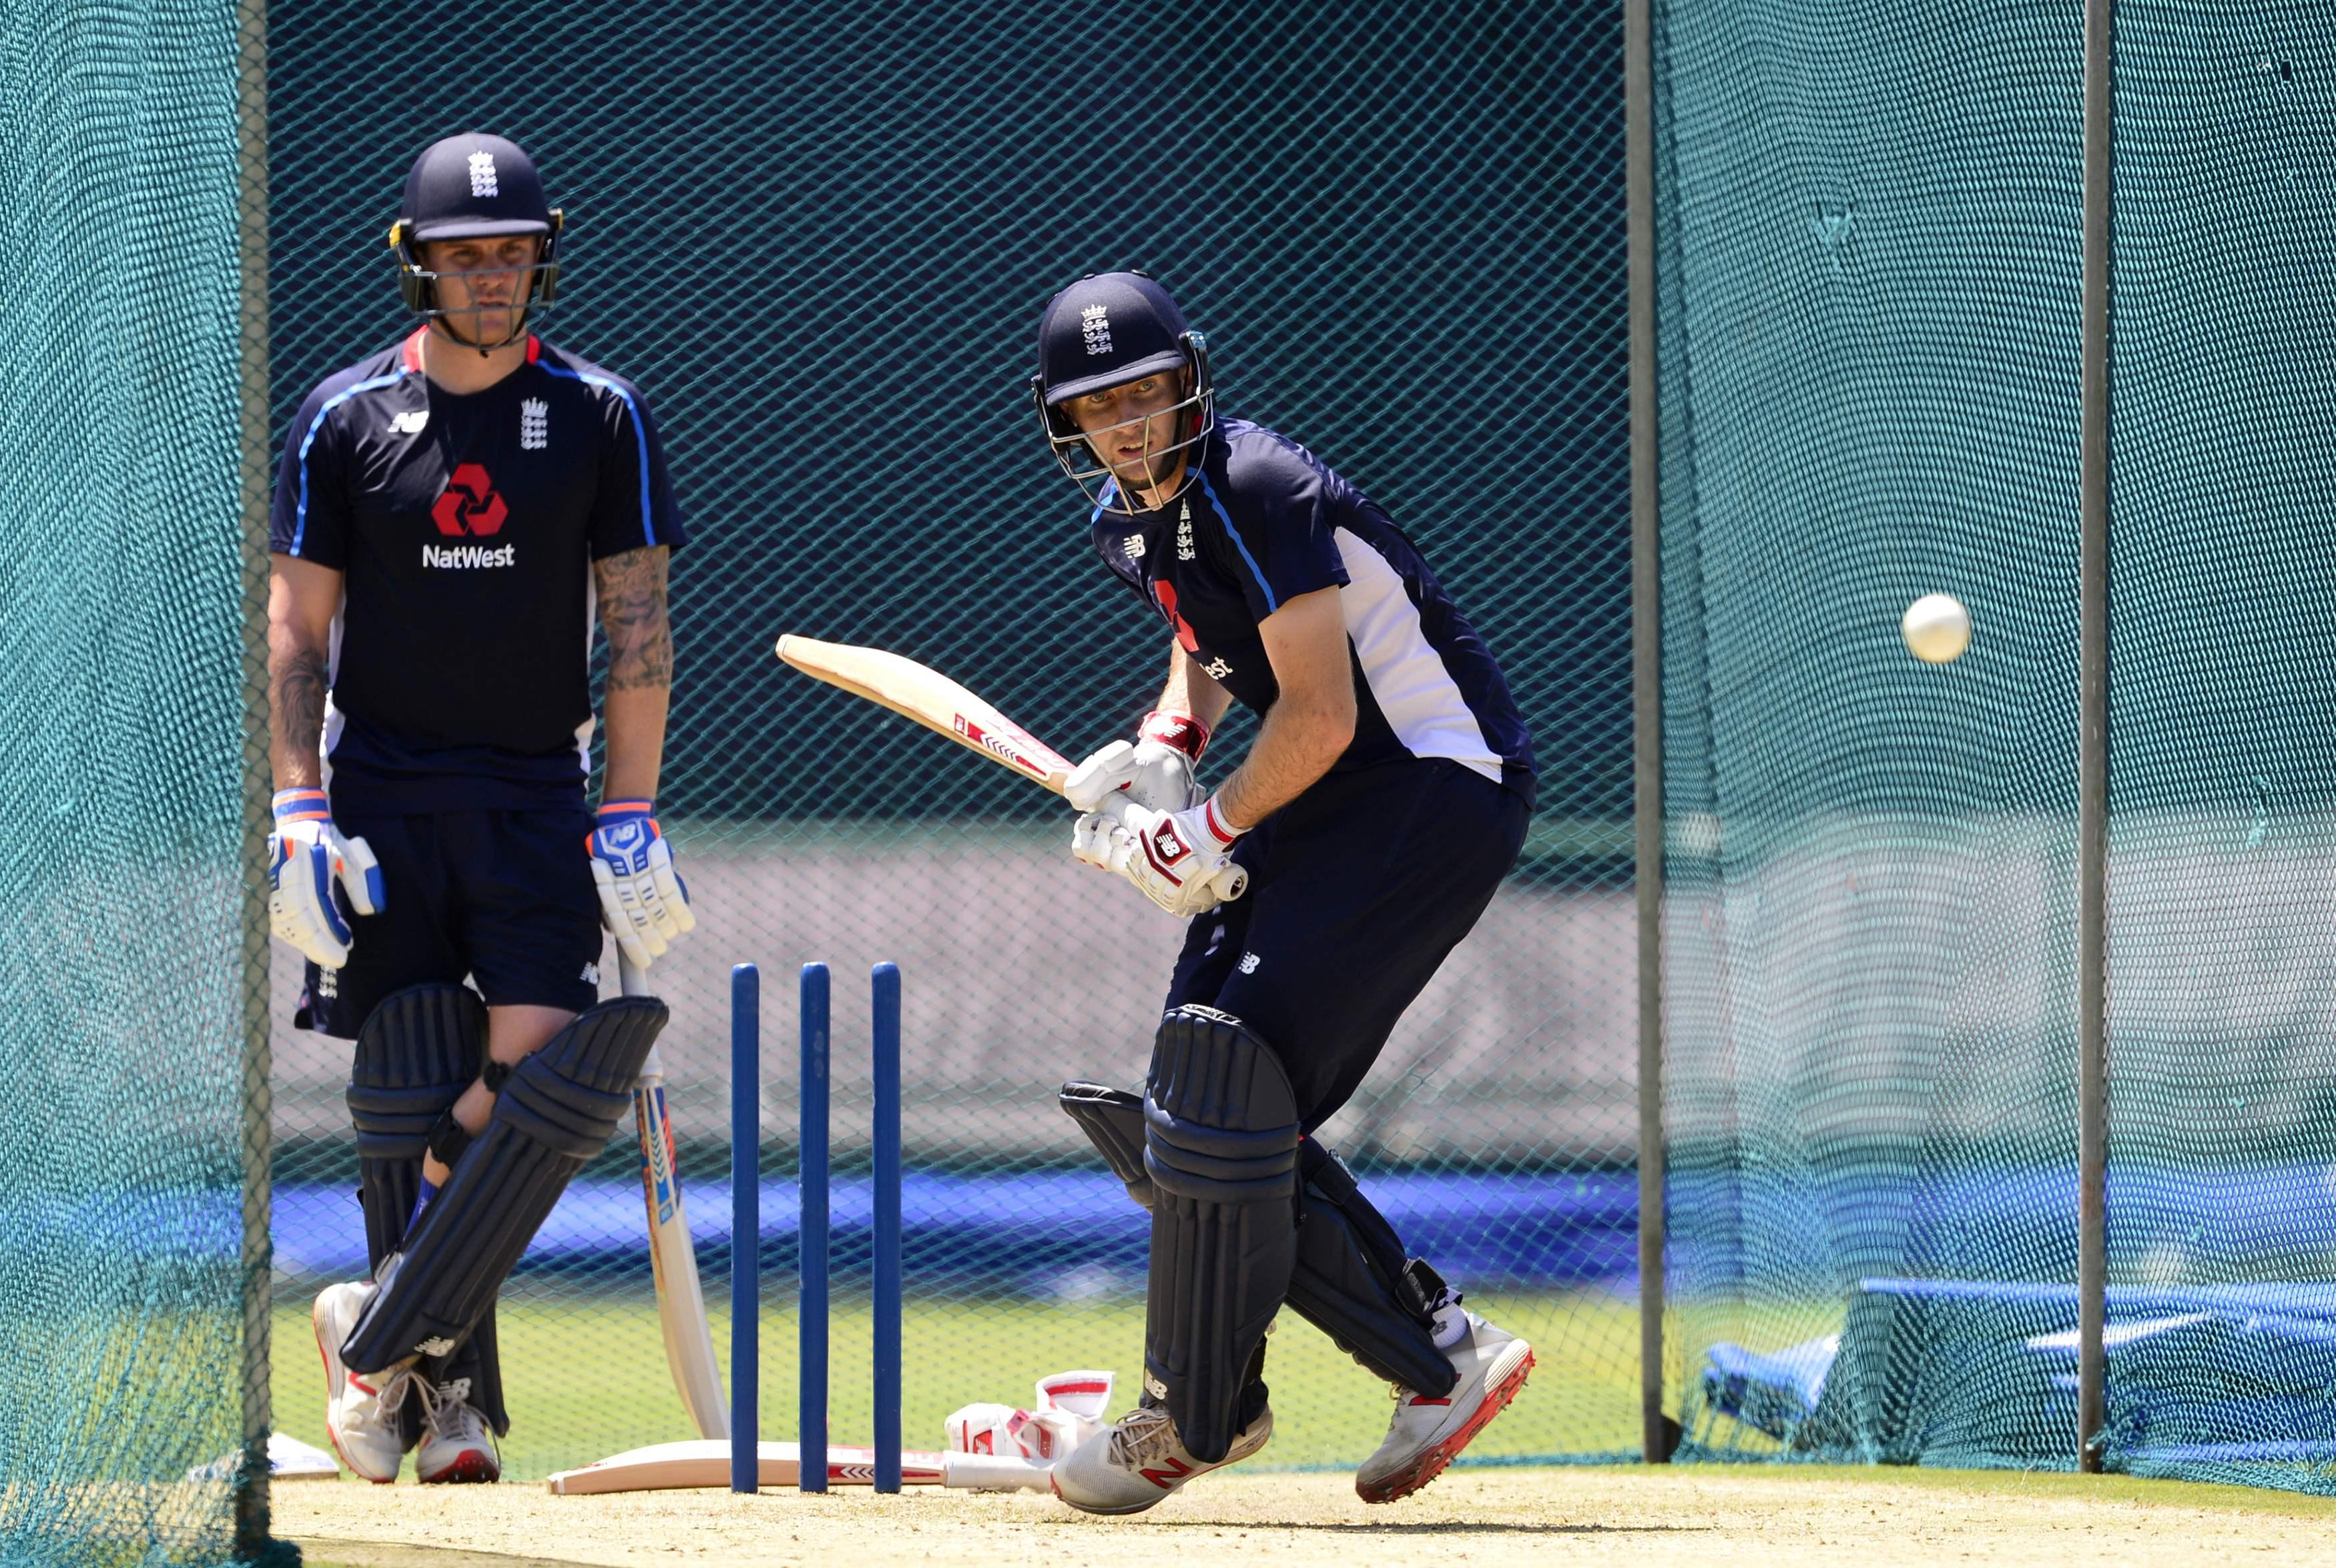 England will be aiming to take a 2-0 lead in the five-match series